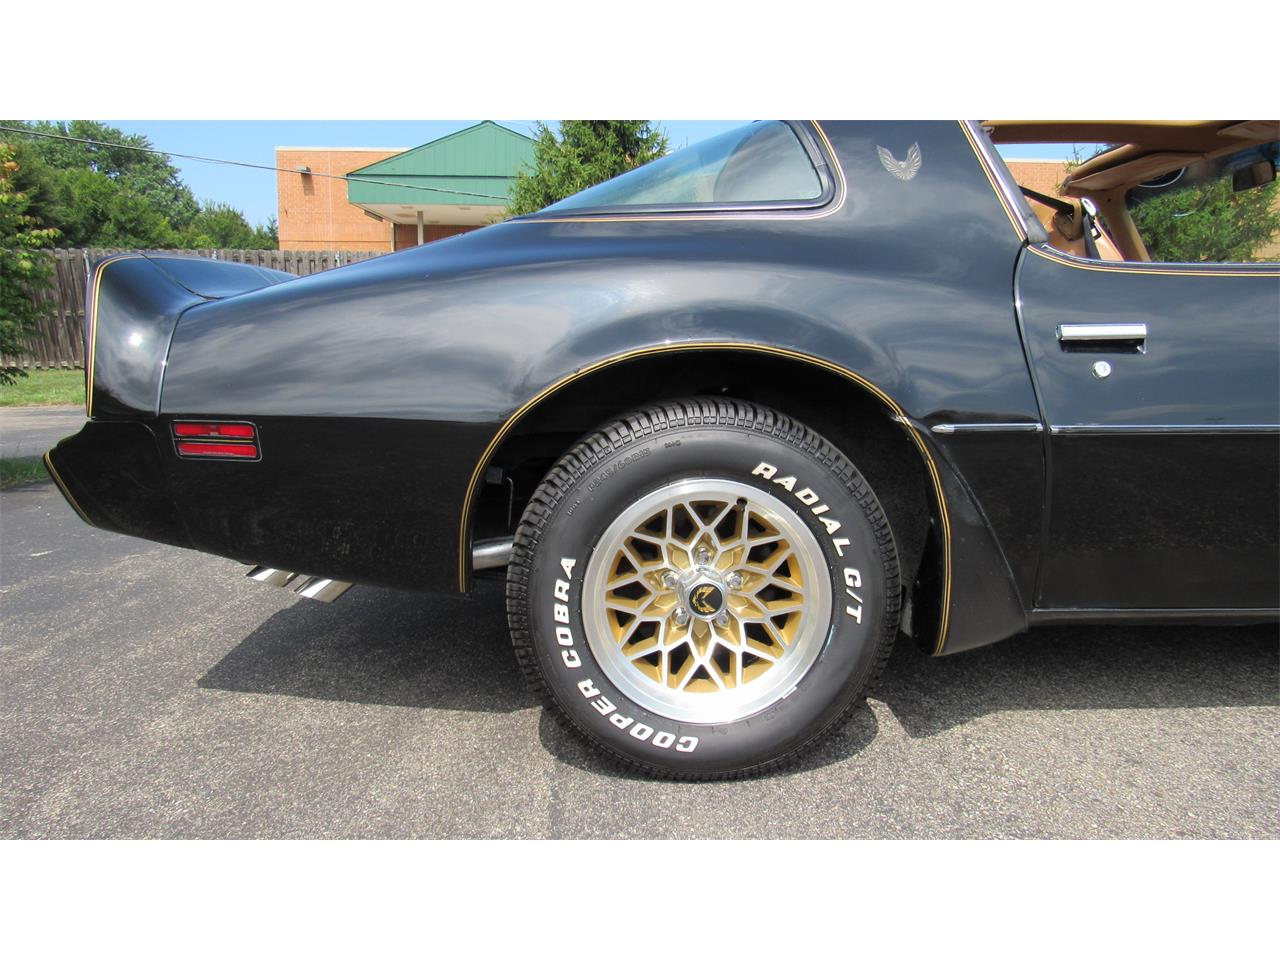 1979 Pontiac Firebird Trans Am for sale in Milford, OH – photo 15